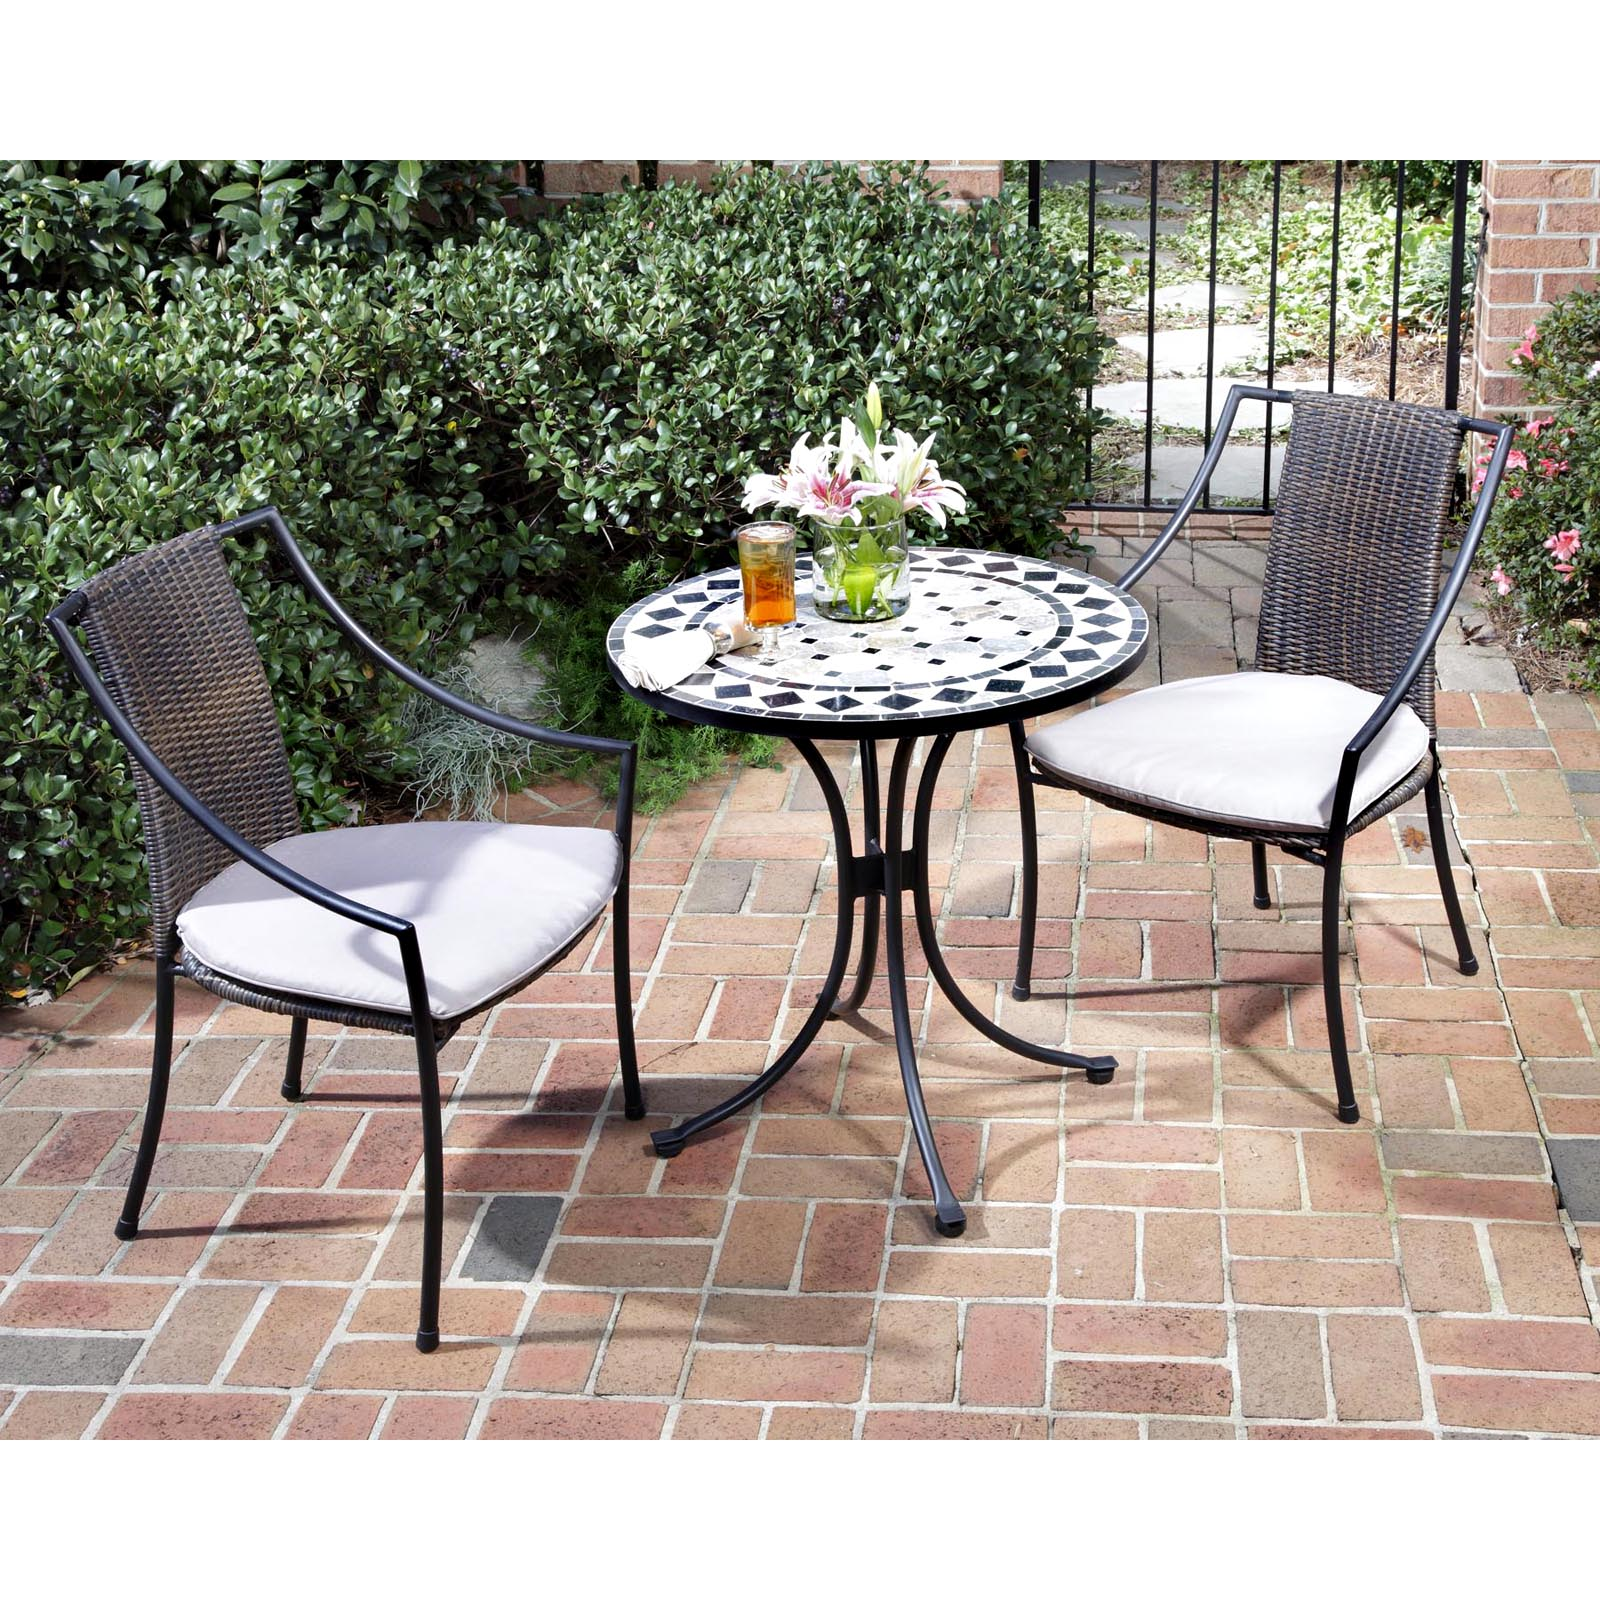 Superior Home Styles Marble Mosaic Bistro Set   Outdoor Bistro Sets At Hayneedle